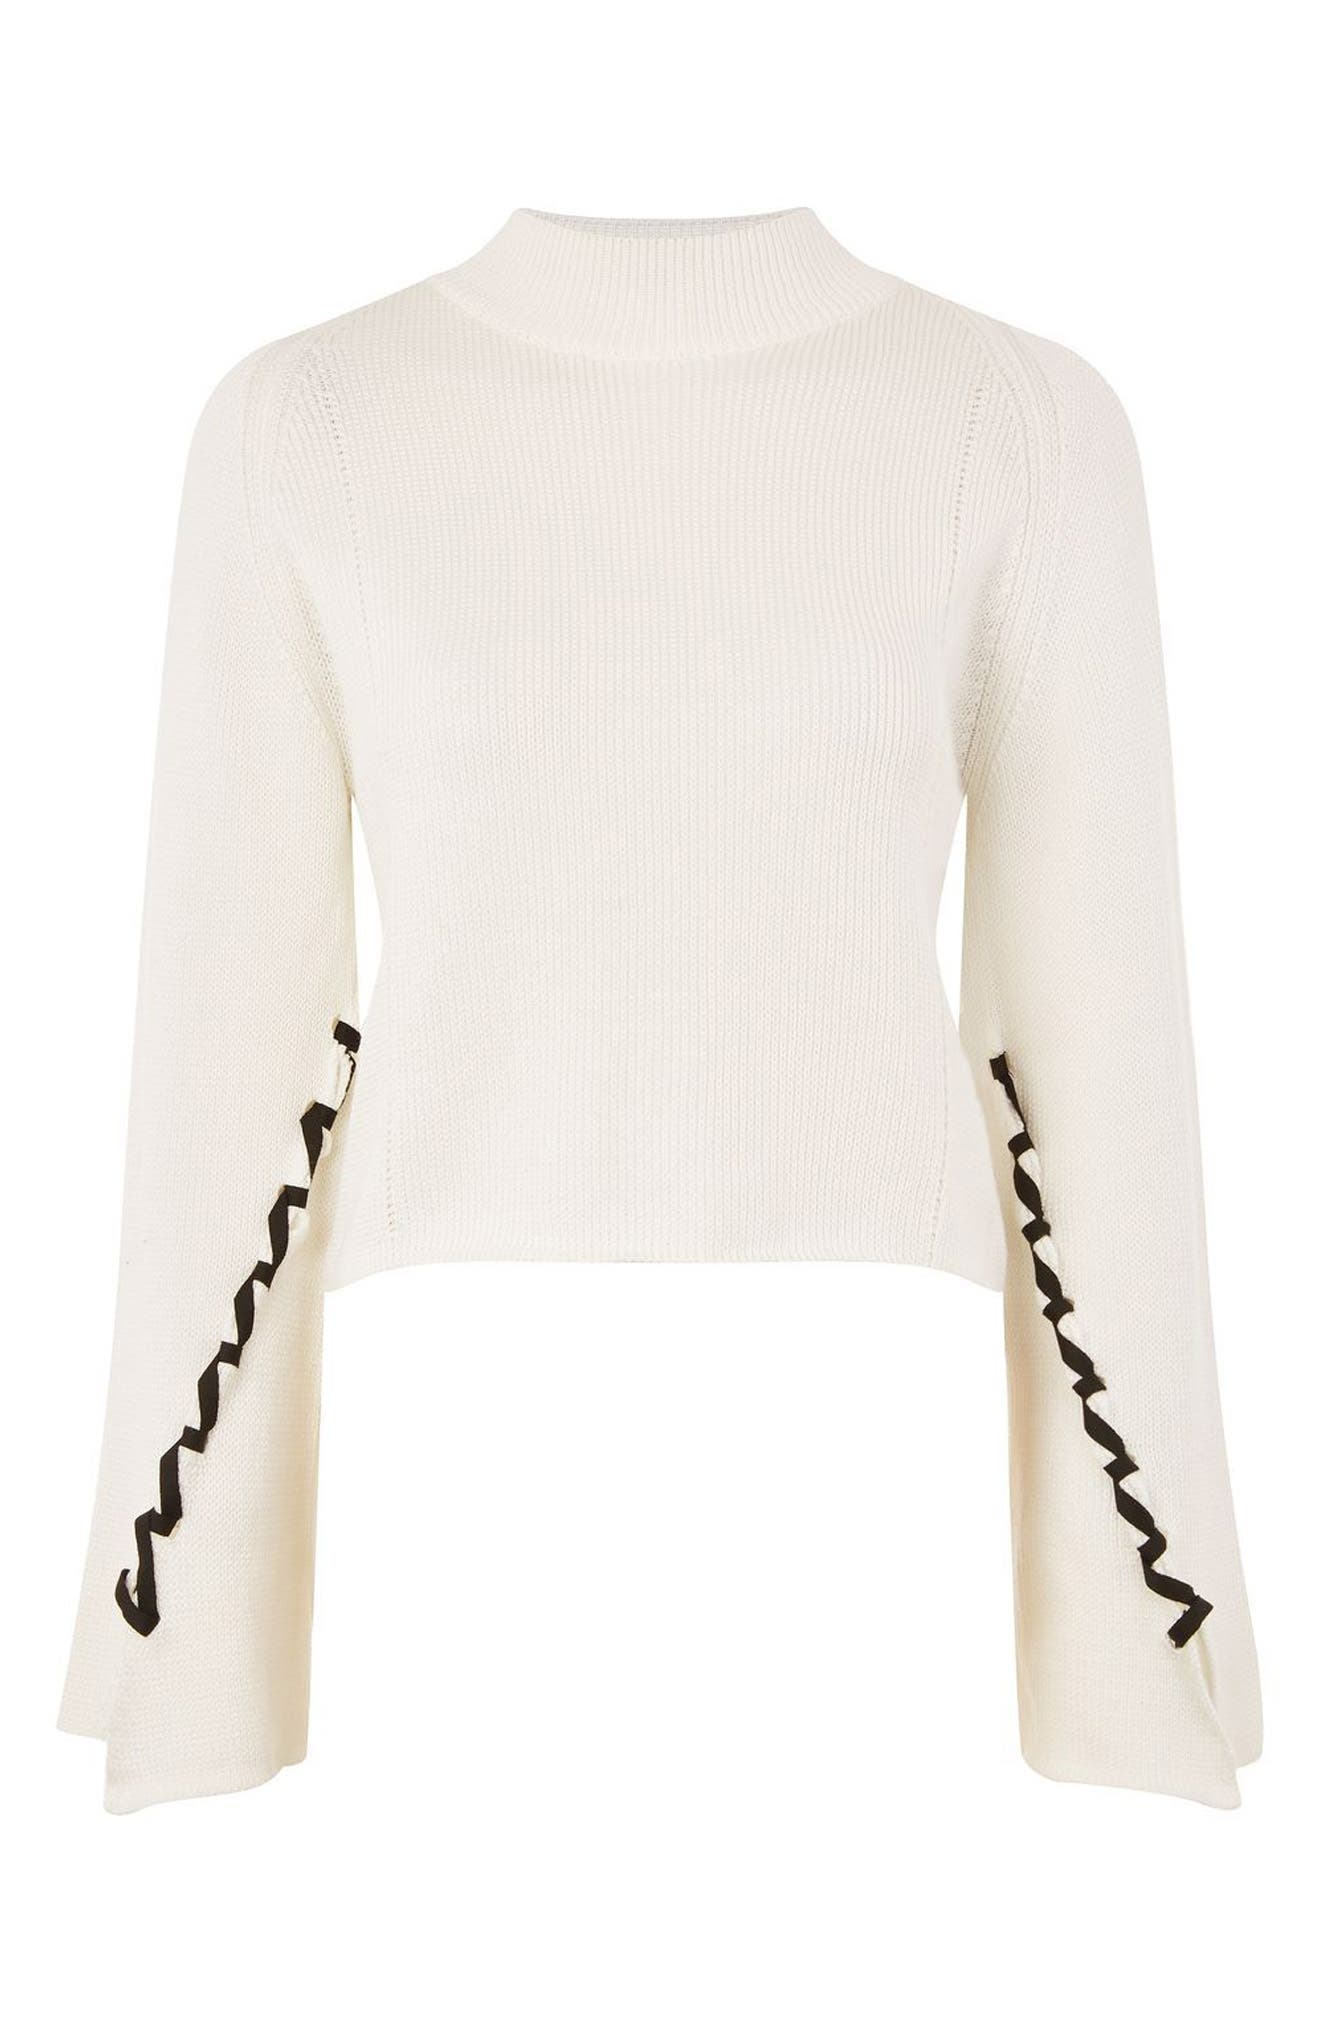 Lace-Up Sleeve Sweater,                             Alternate thumbnail 3, color,                             900